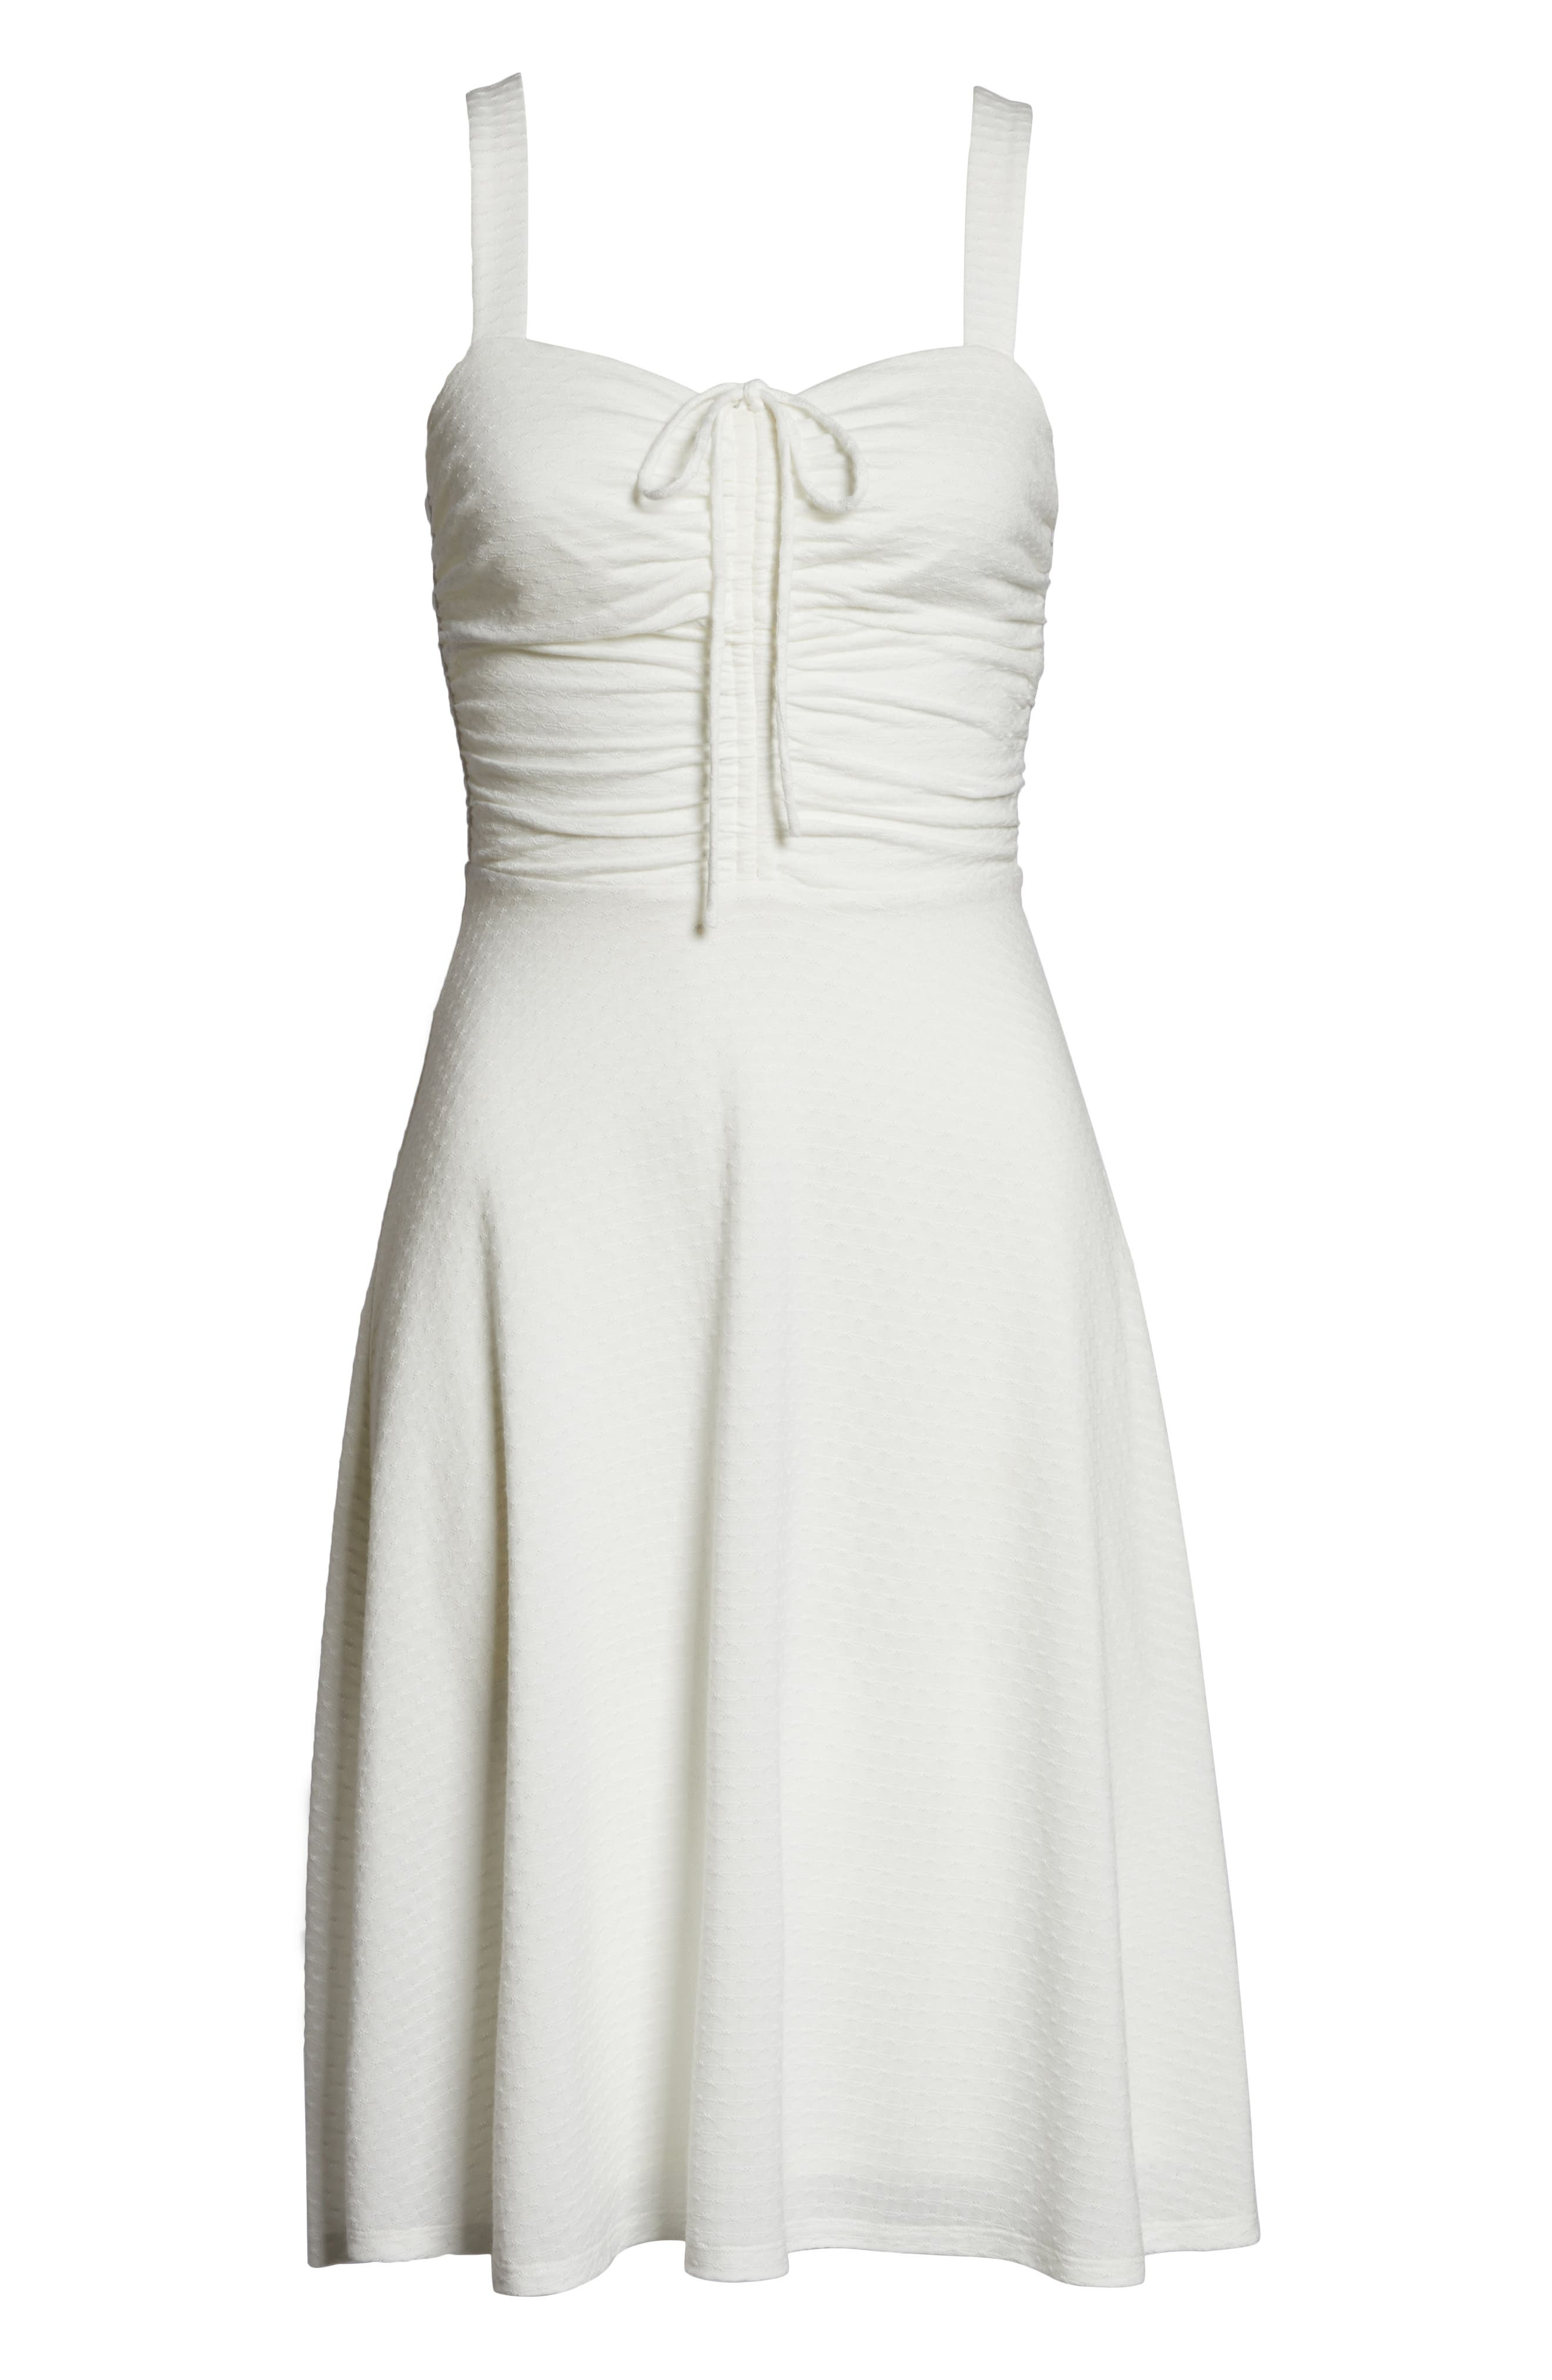 ALI & JAY, Smell the Flowers Fit & Flare Dress, Alternate thumbnail 7, color, WHITE